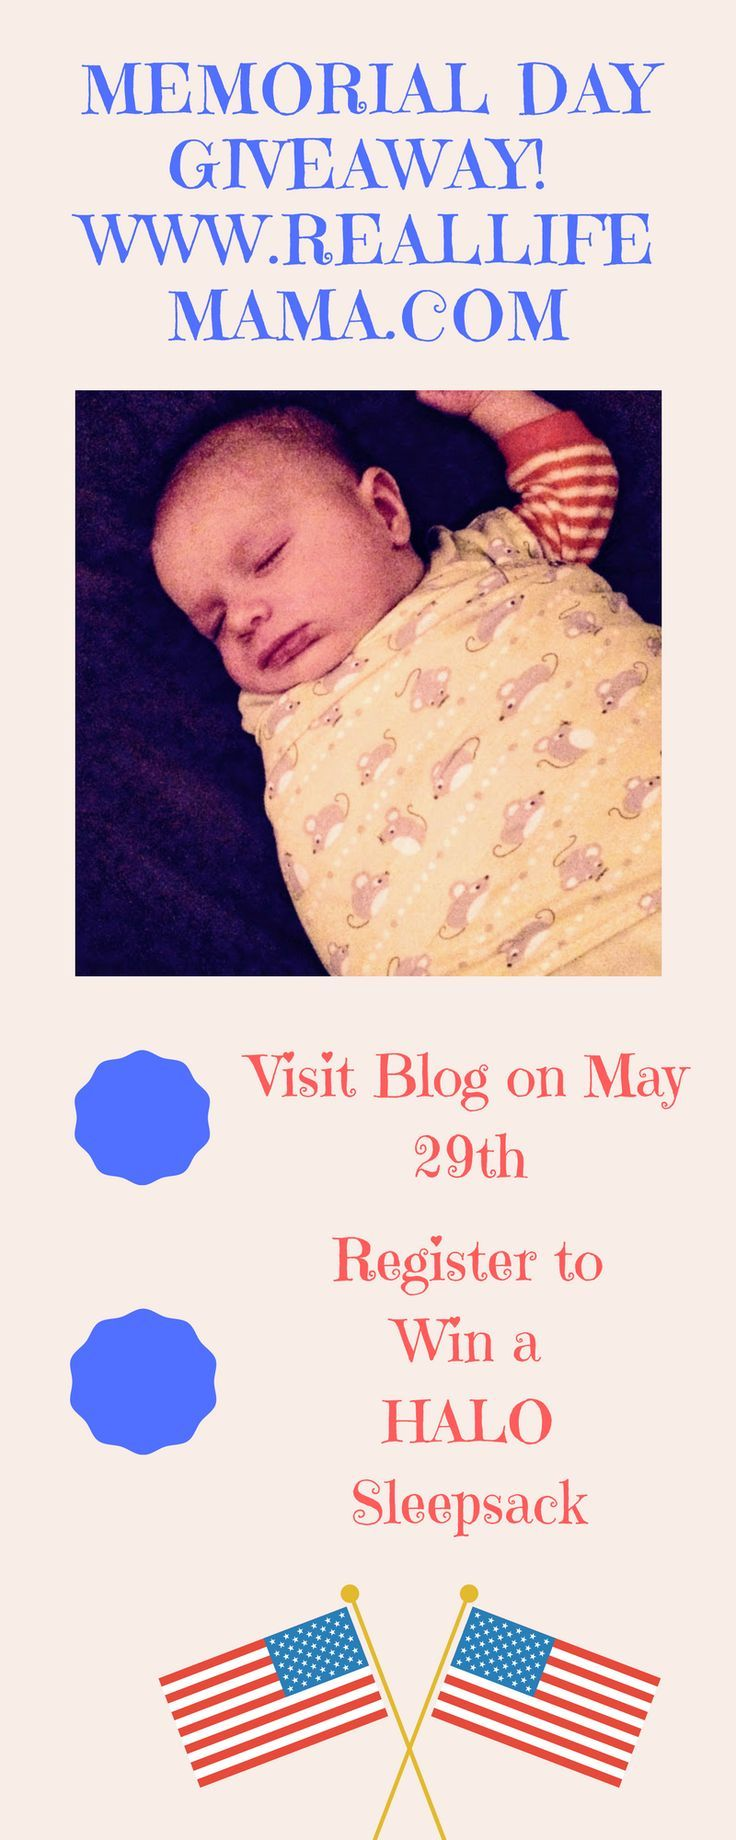 Visit the blog on Monday May 29th, and register for a chance to win a brand new HALO sleepsack for your infant or toddler!  Or, give as a gift to an expectant mama!